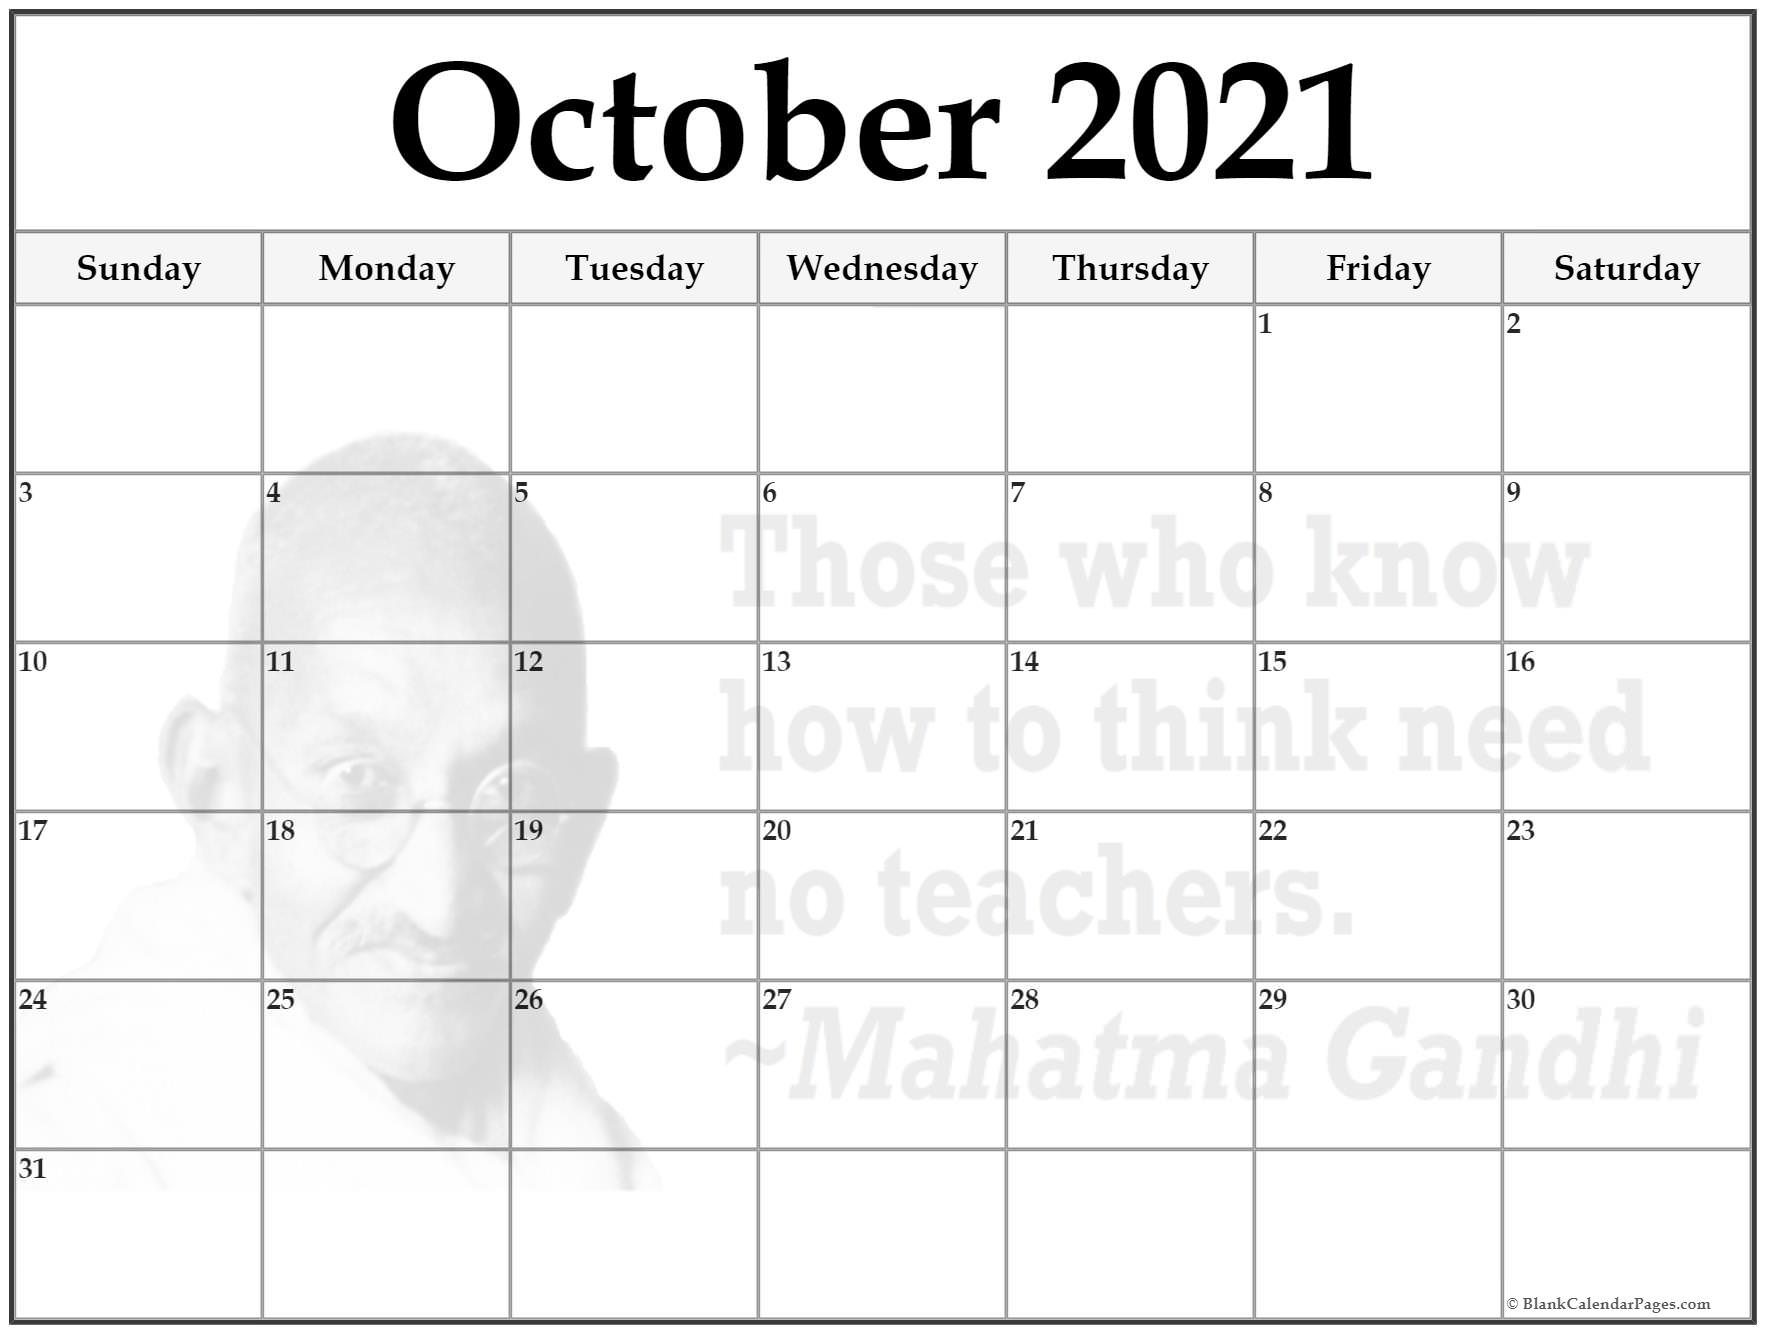 October 2020 gandhi calendar. Those who know how to think need no teachers. ~Mahatma Gandhi